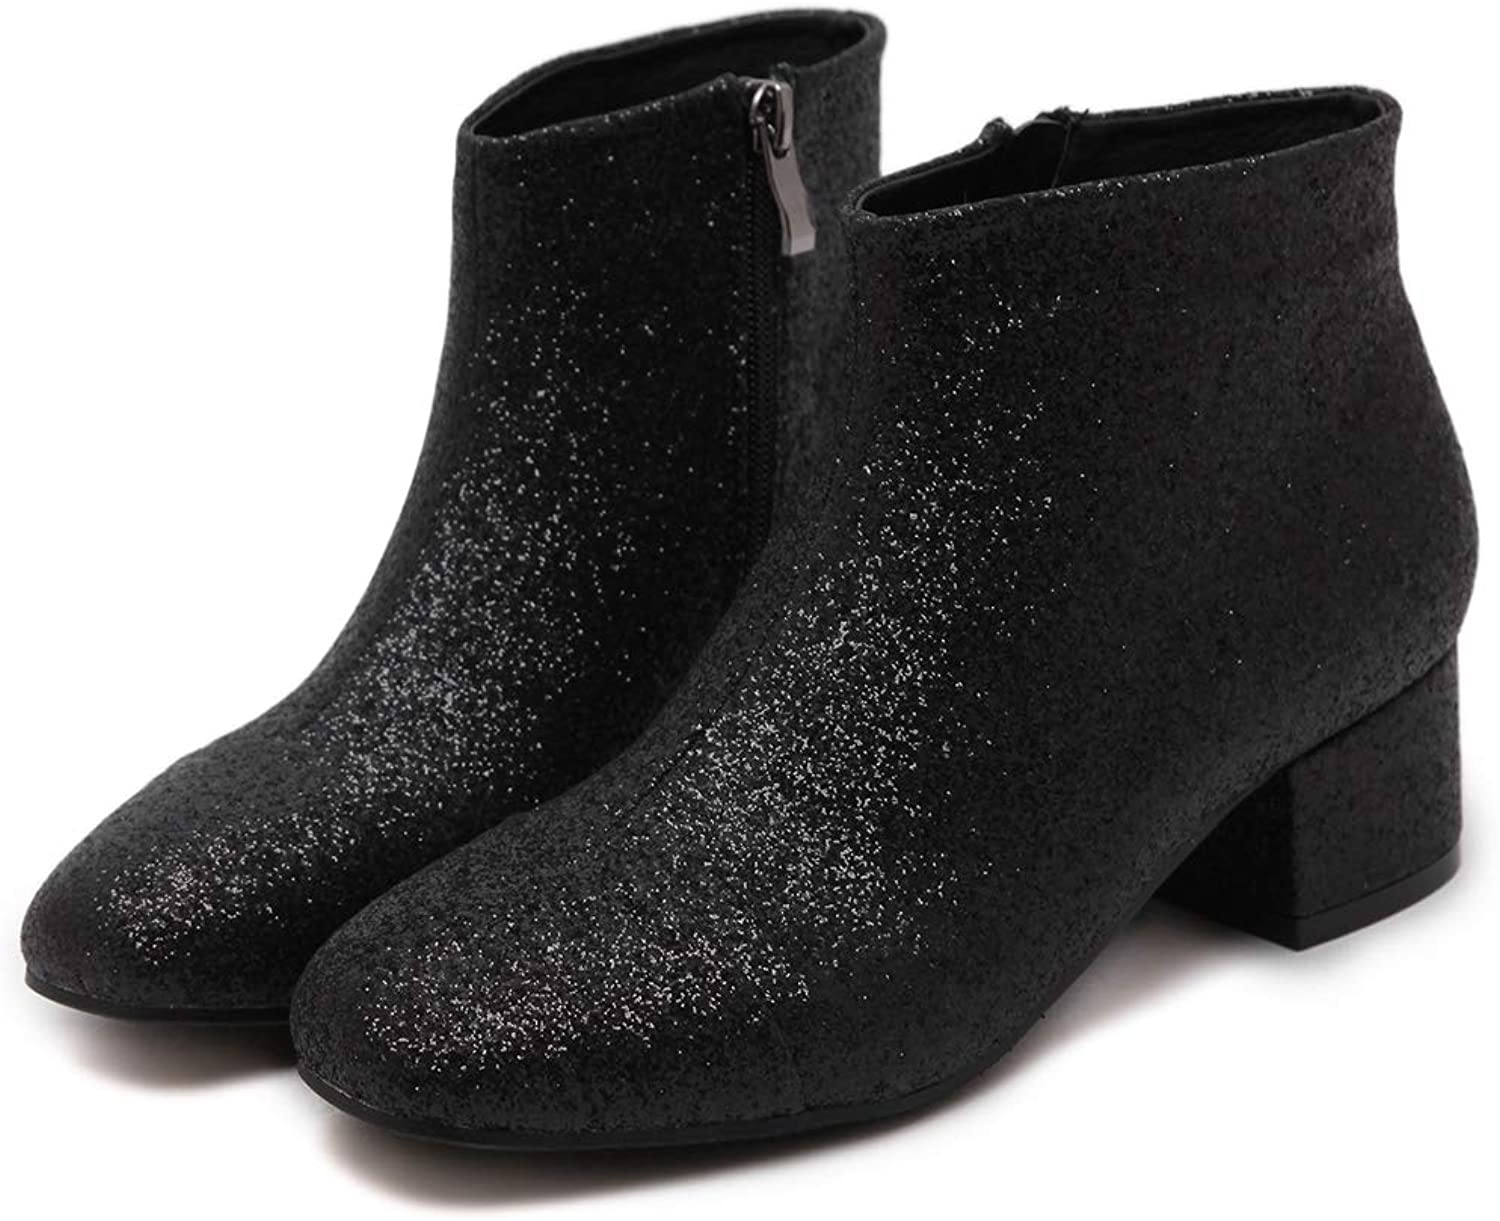 Sam Carle Women Boots, Solid color Elastic Stretchy Sock Pointed Toe Thick Heel Ankle Boot